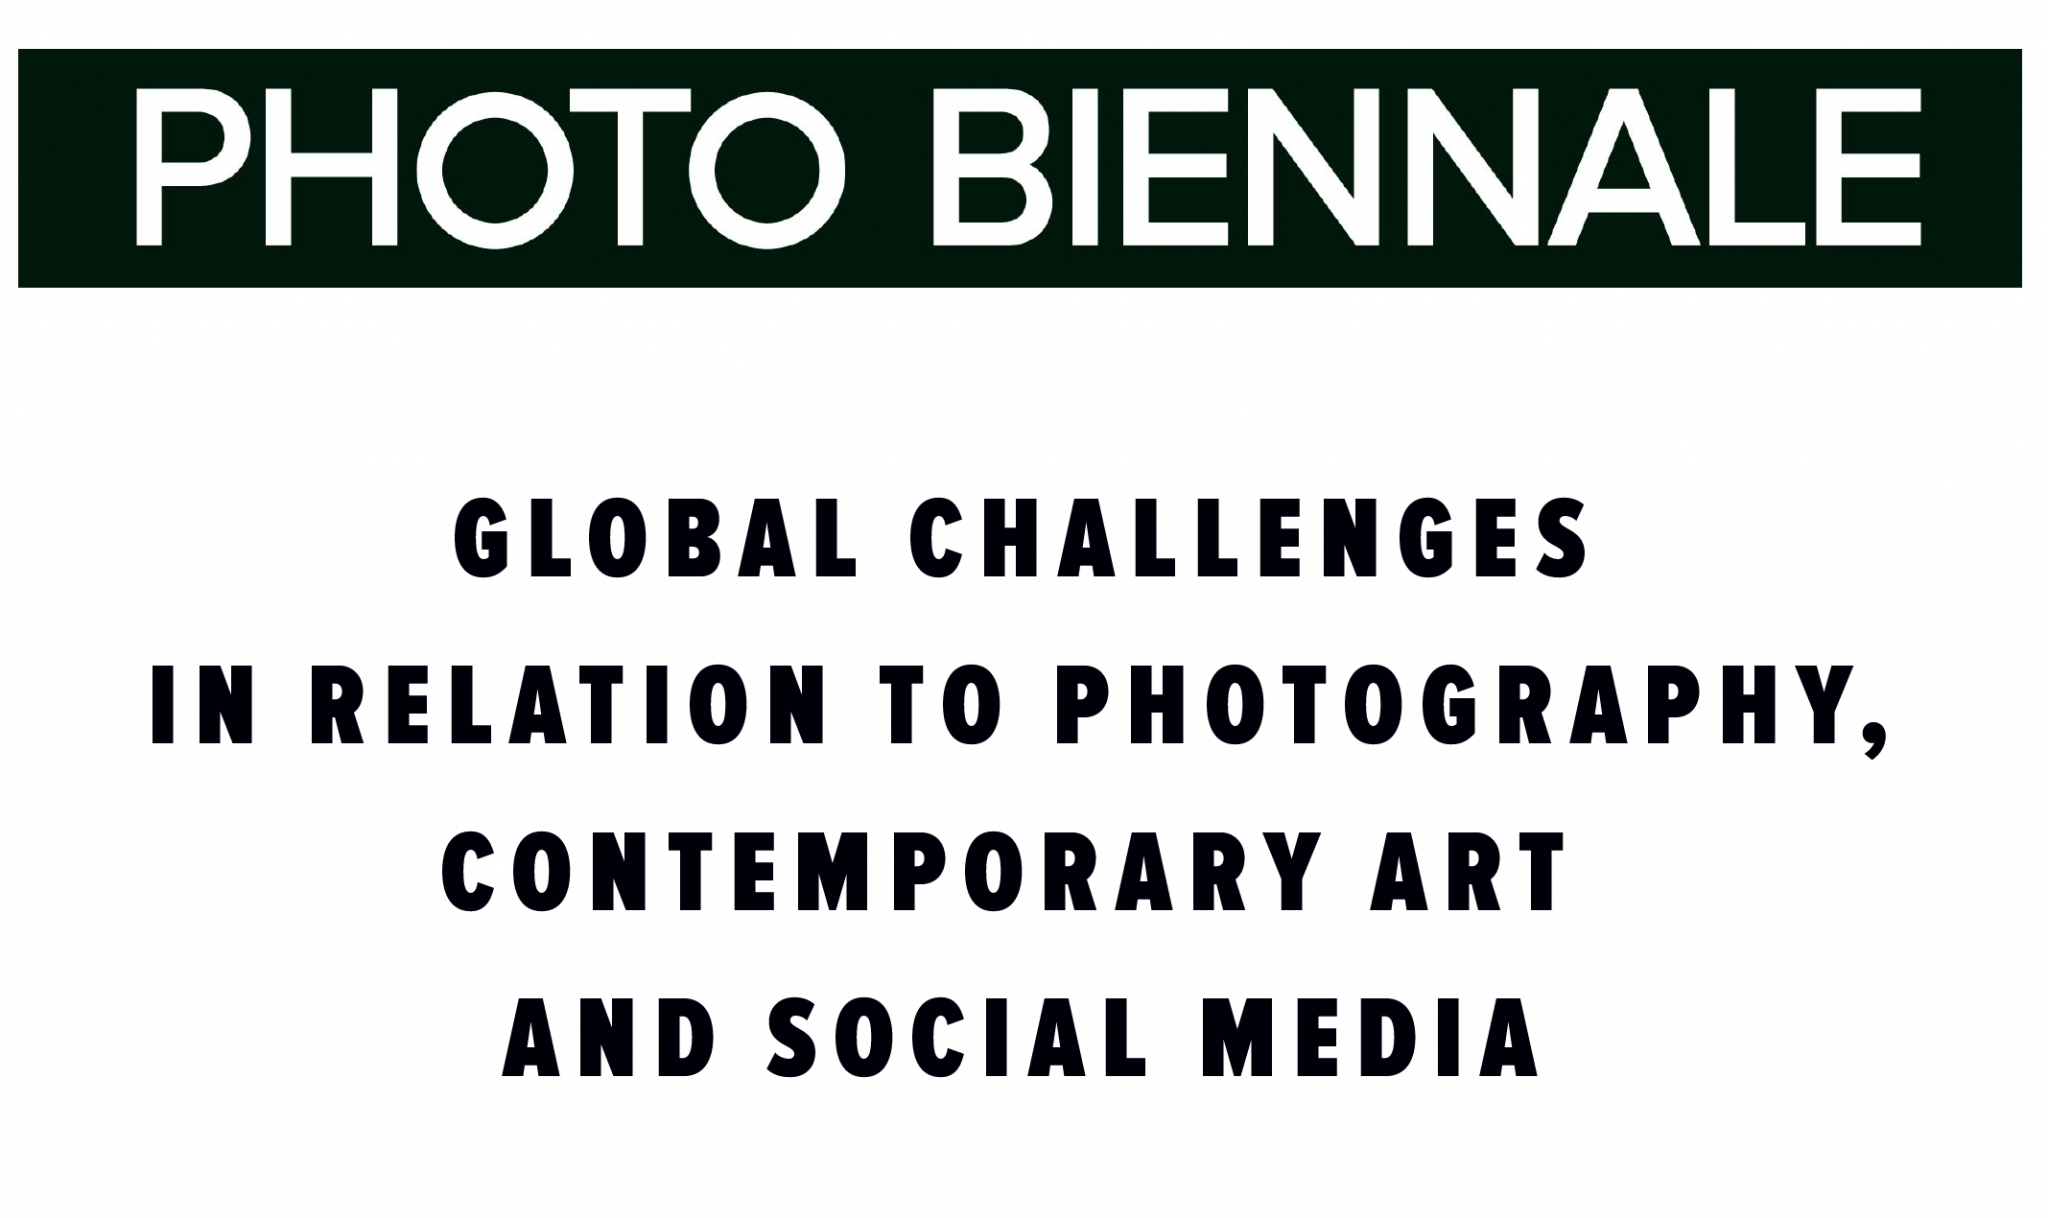 Photo-Biennale-1024x609@2x.png